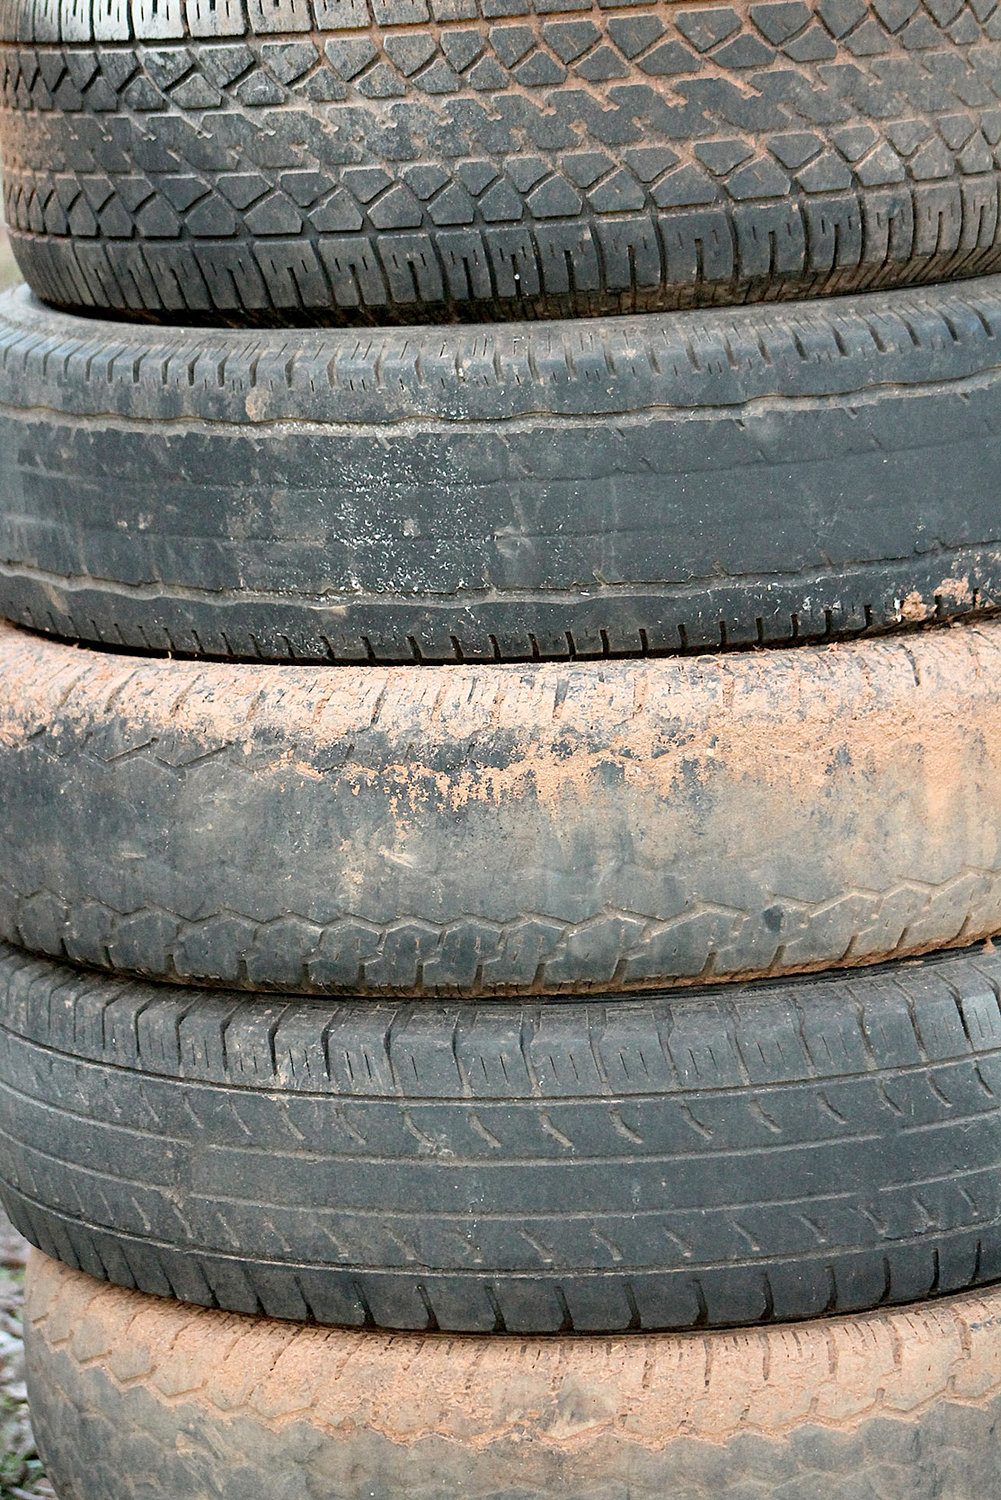 BRADLEY COUNTY officials are warning the public to be aware of anyone offering to bring them old tires to be used for construction, craft or other projects. Some area residents have found hundreds of tires dumped on their property after responding to social media posts and ads on Craigslist and other sales sites.